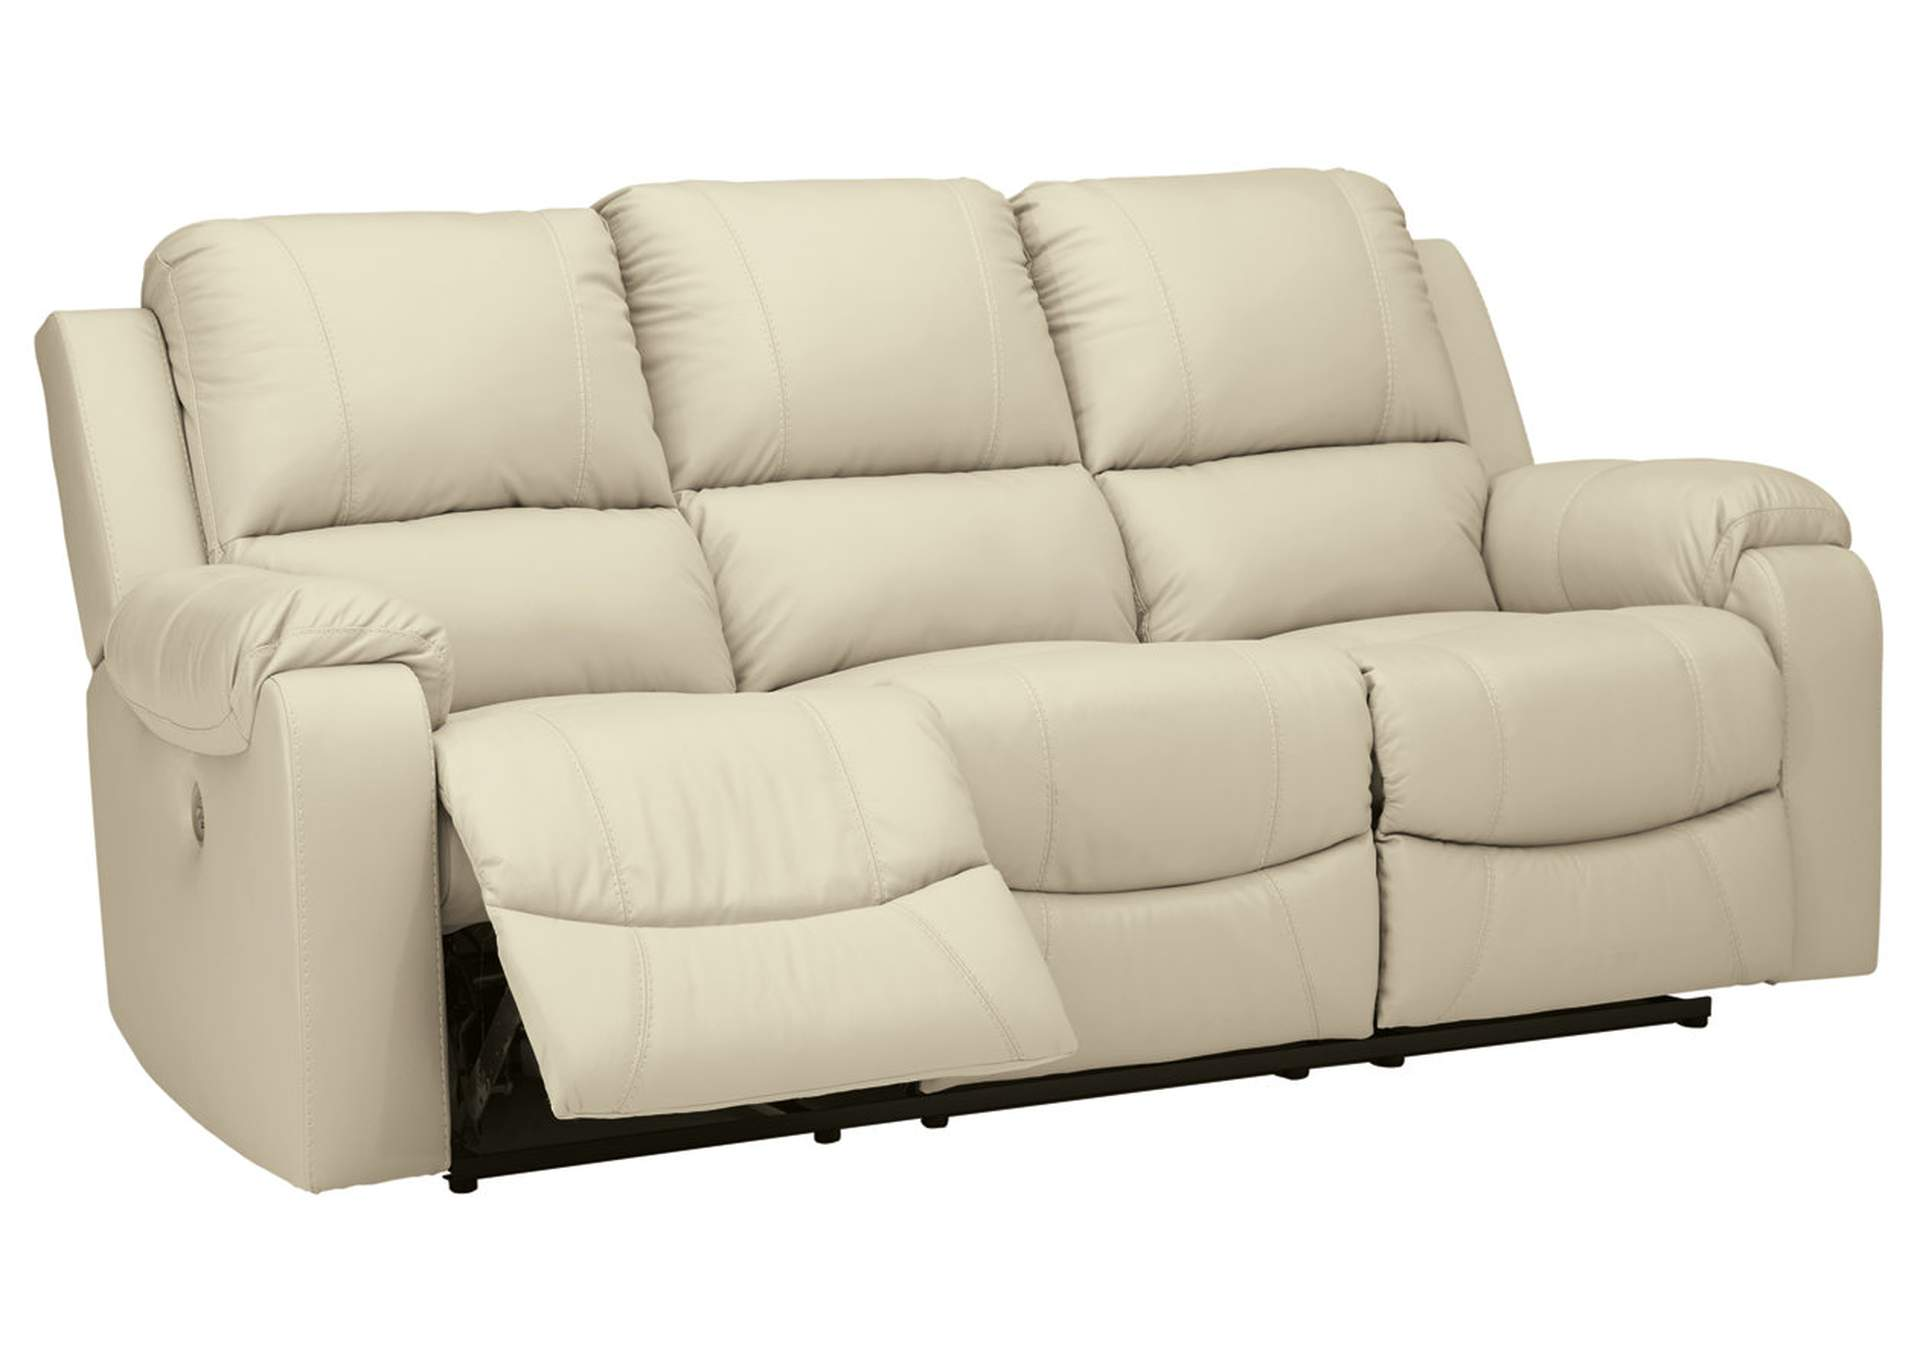 Rackingburg Cream Power Reclining Sofa,Signature Design By Ashley